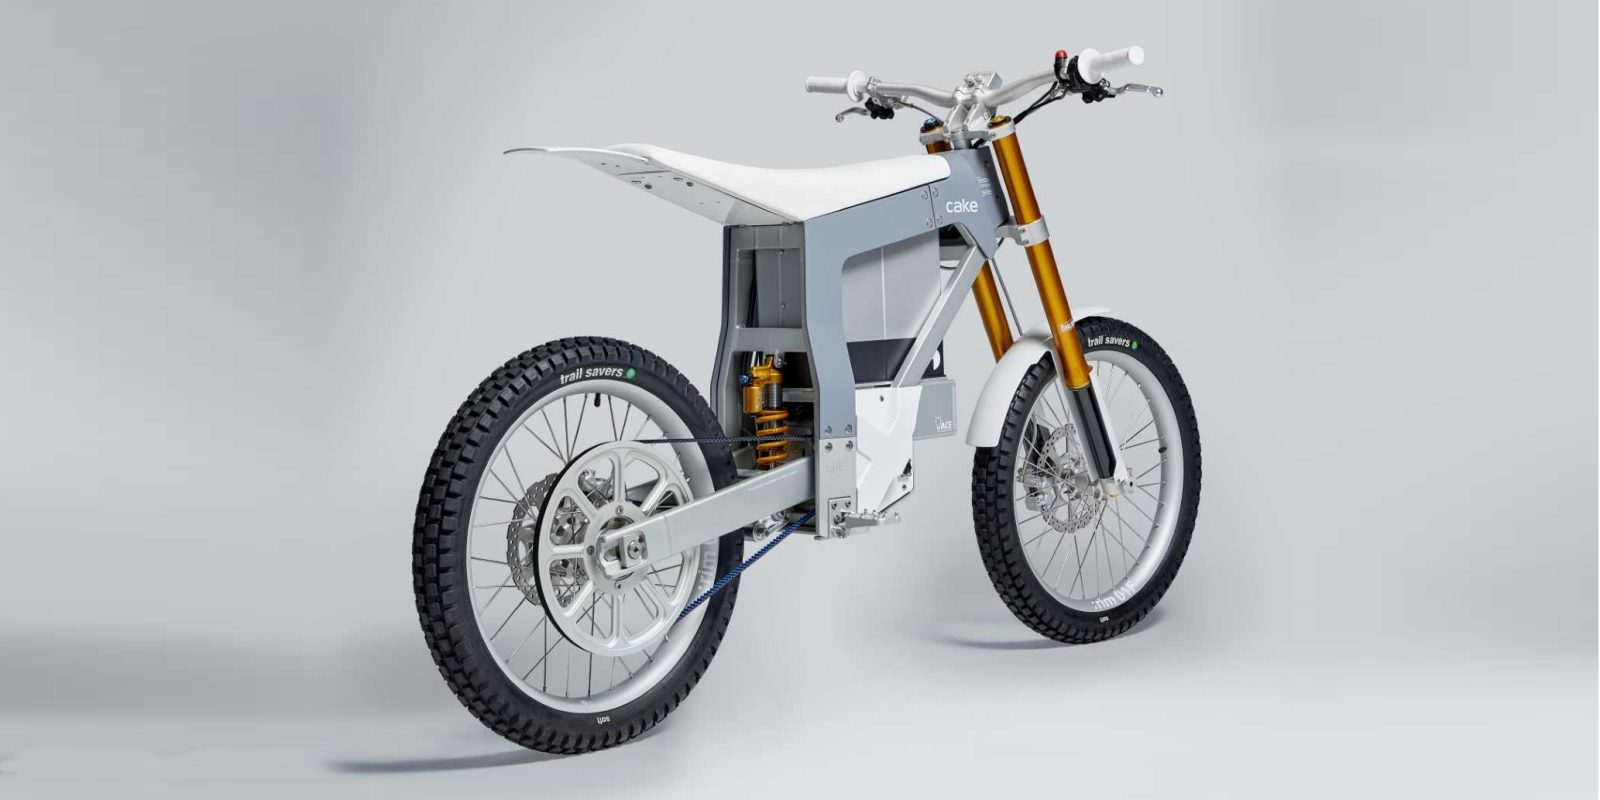 CAKE to offer Gates Belt Drive on Kalk electric dirt bike and